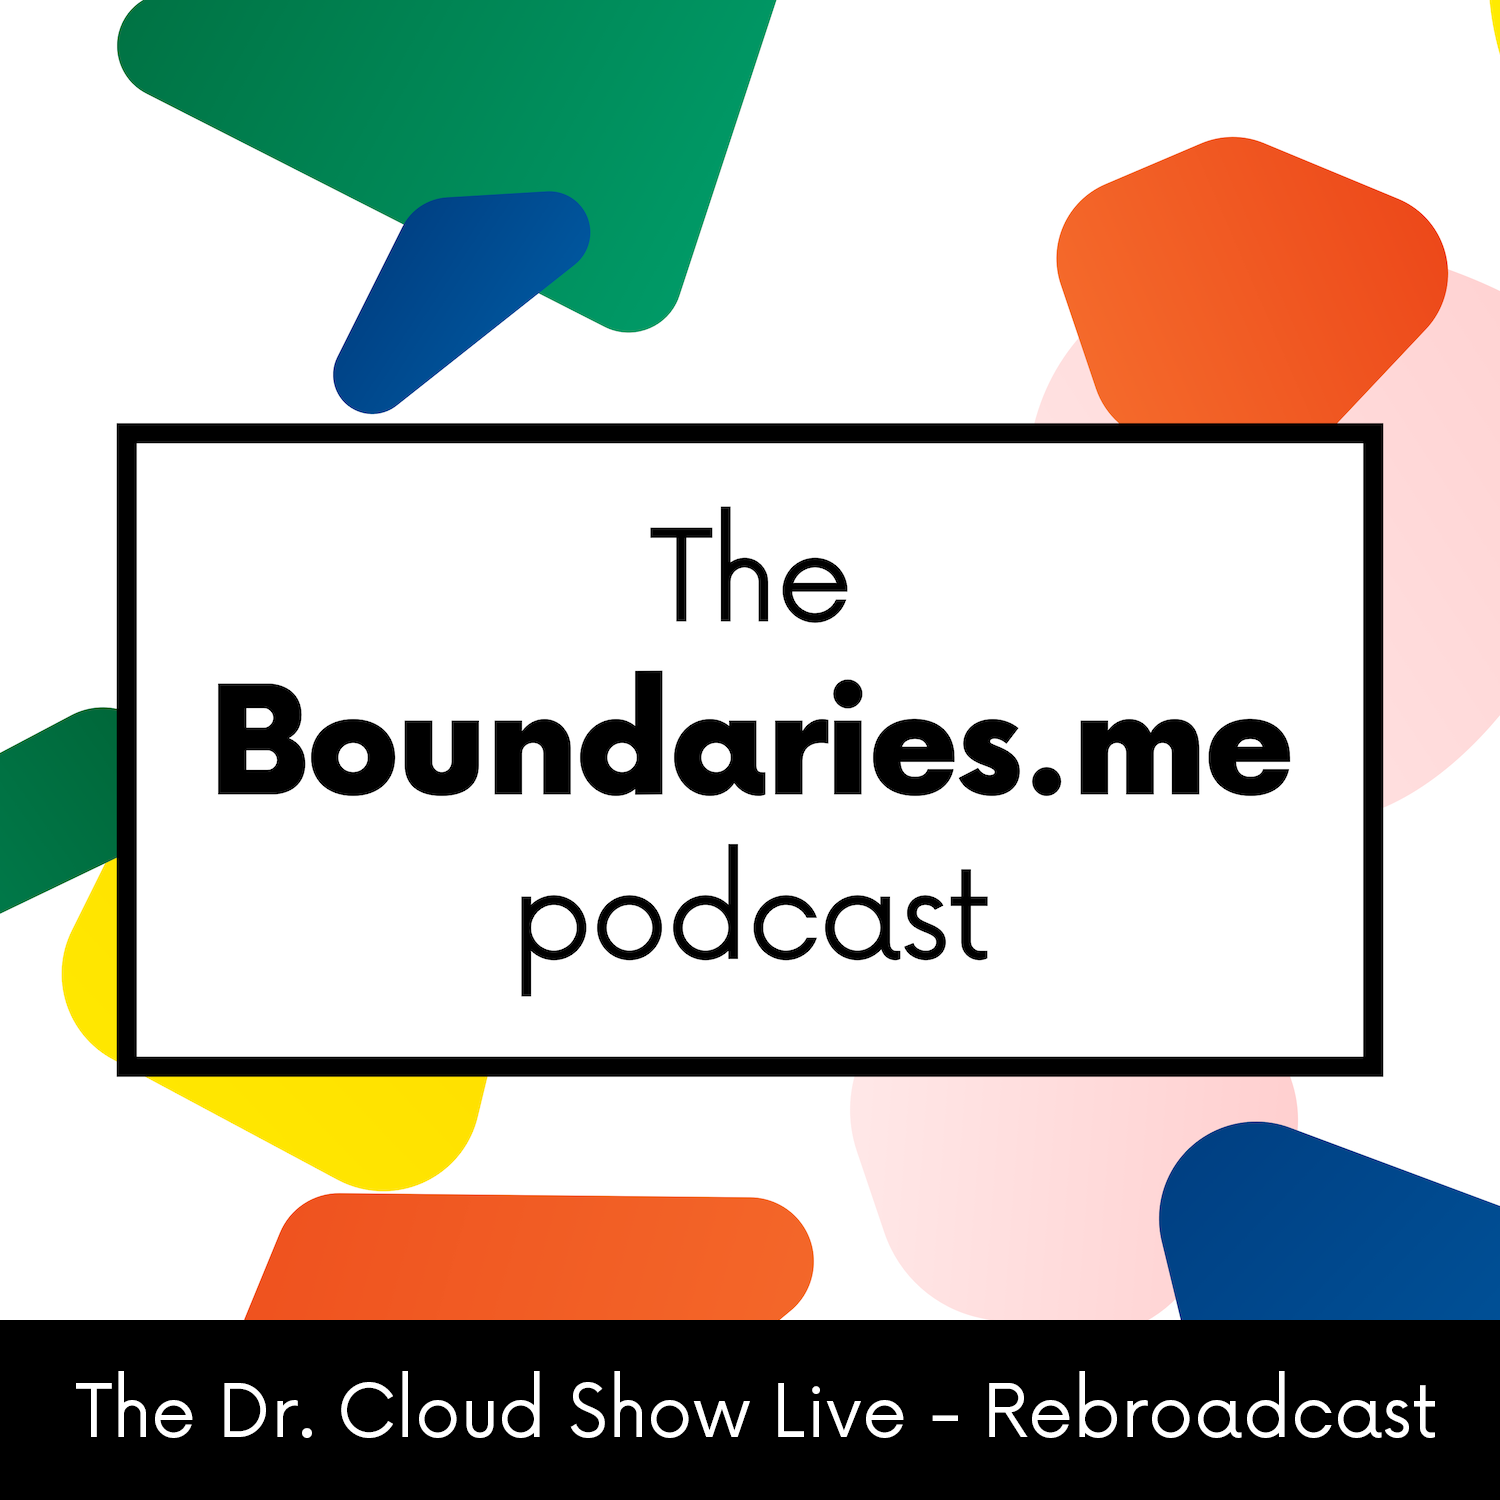 Episode 232 - The Dr. Cloud Show Live - Don't Let Need States Determine Your Vision - 6-03-2021